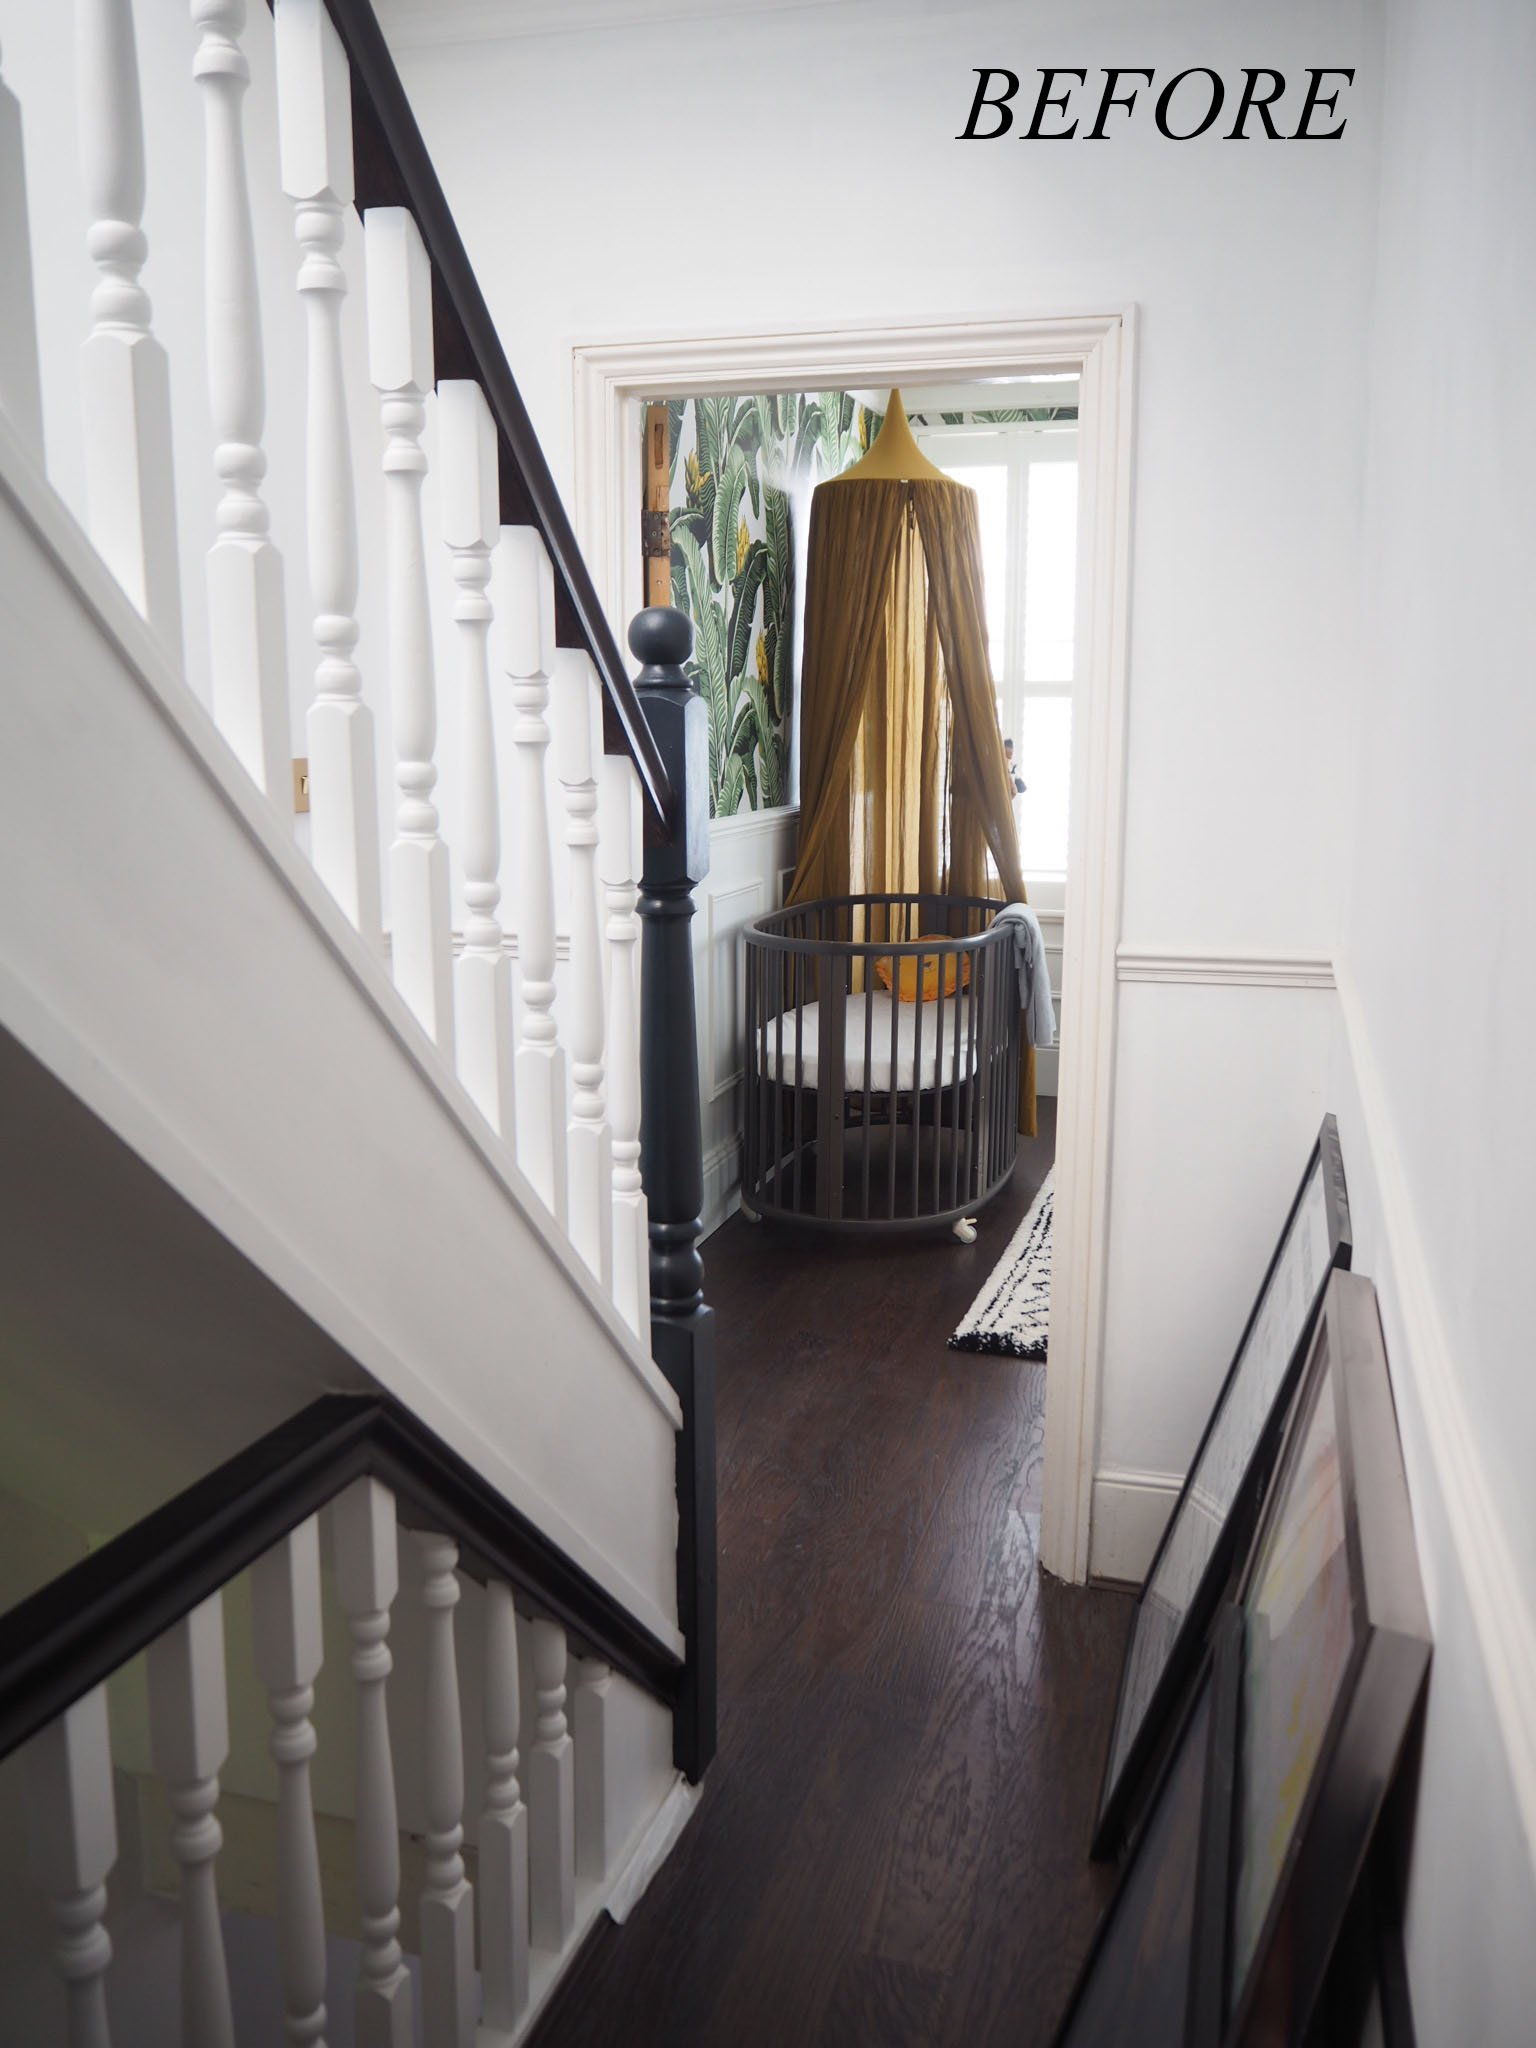 A before shot of the first floor landing.